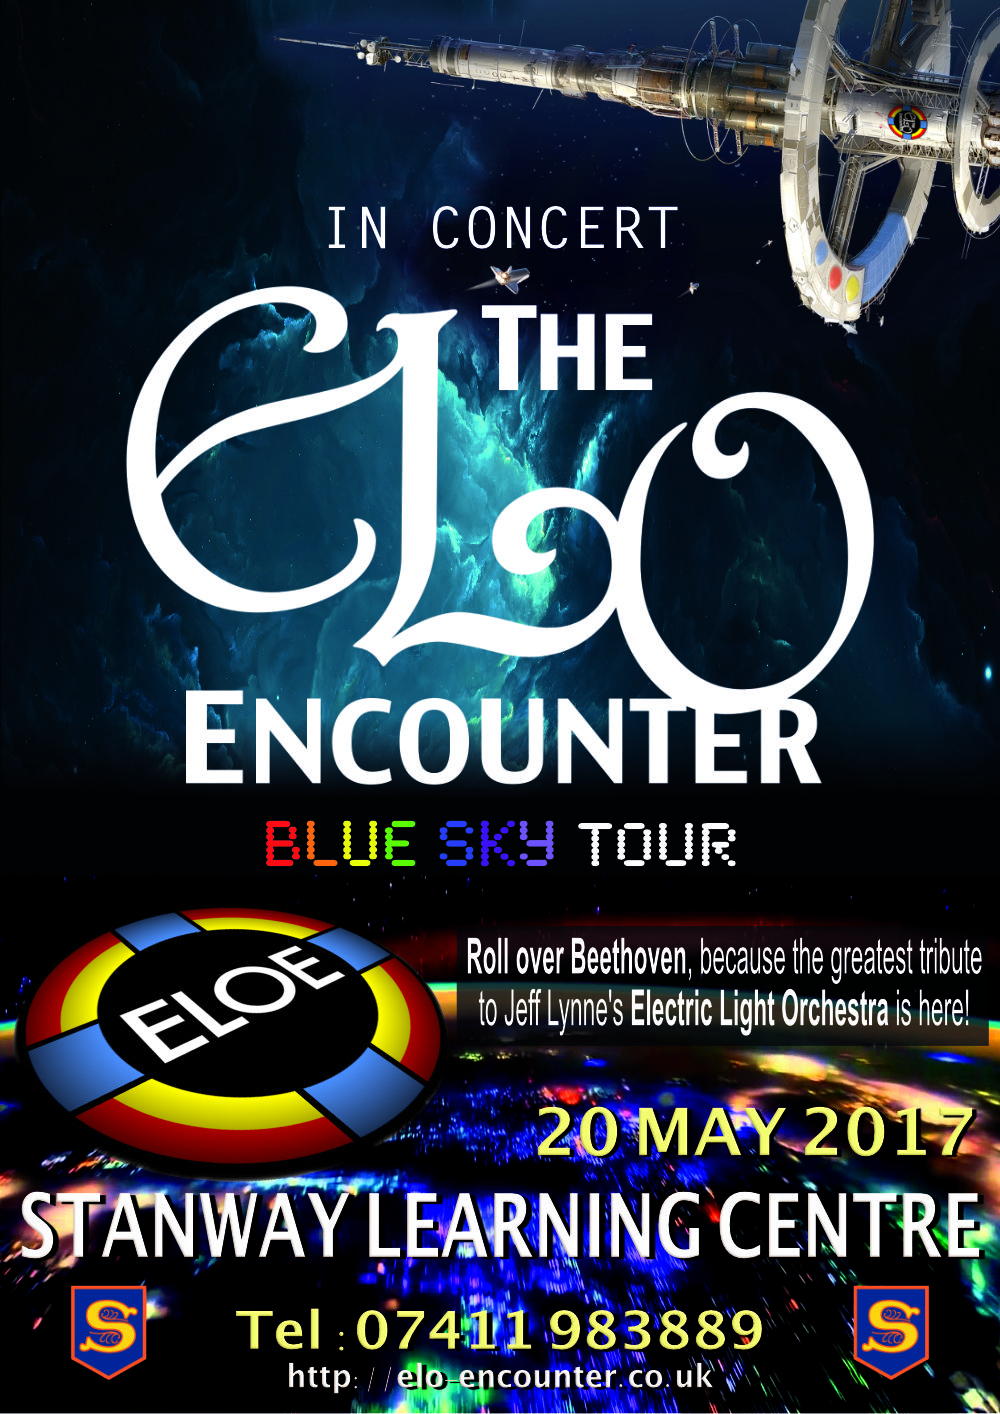 Stanway Learning Centre - ELO Encounter Poster